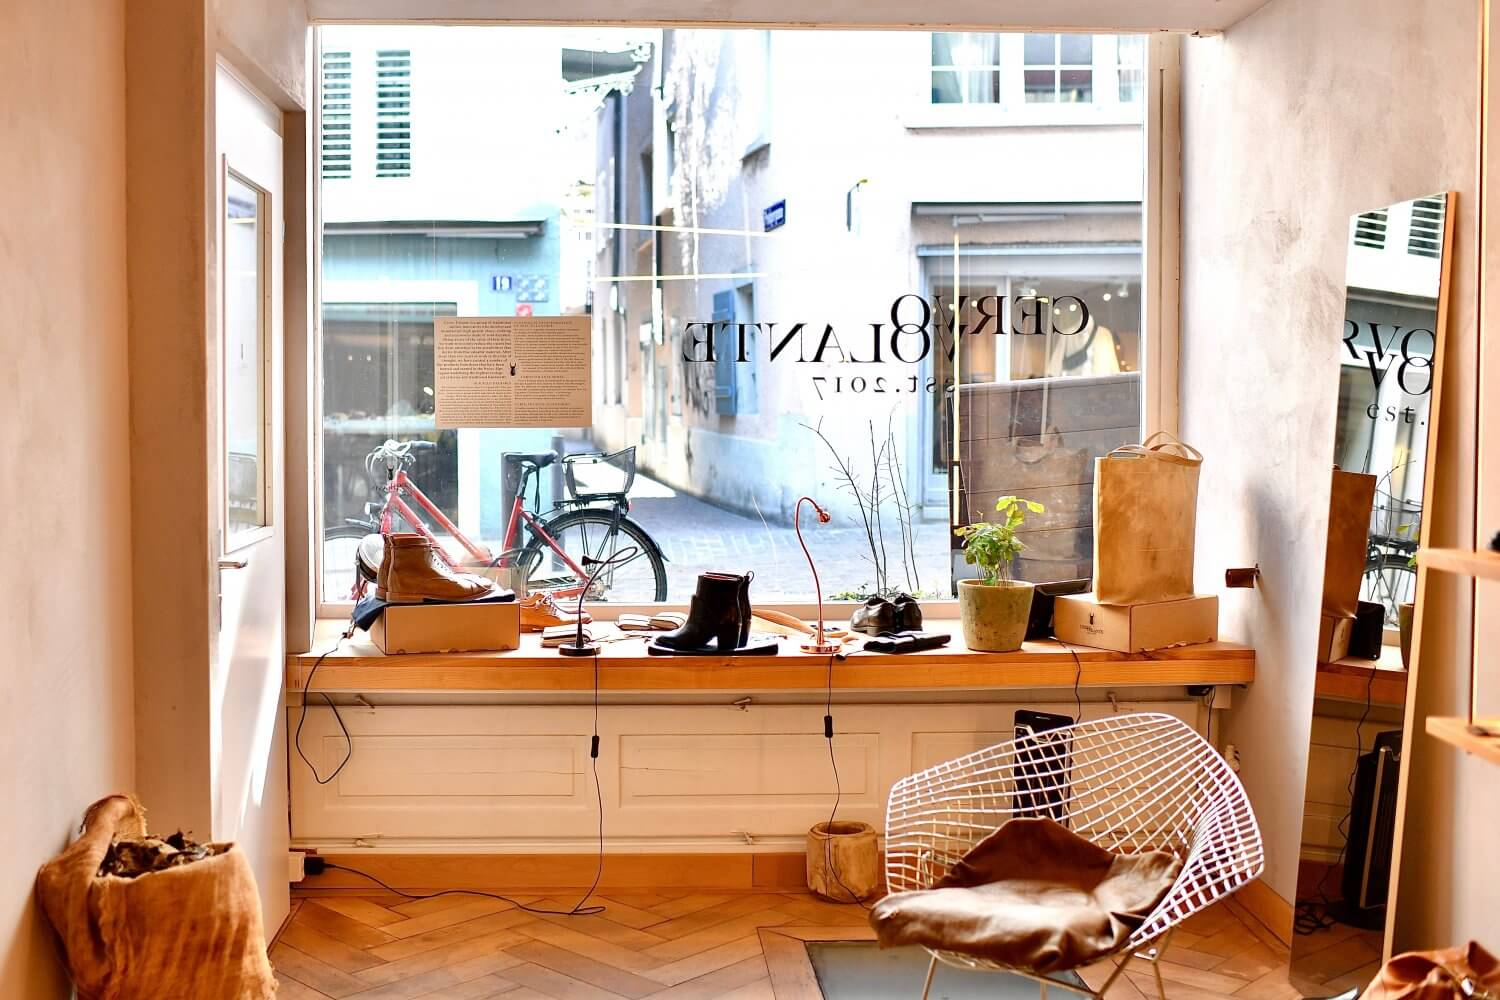 The Boots with an Awesome Up-cycling Story - Cervo Volante